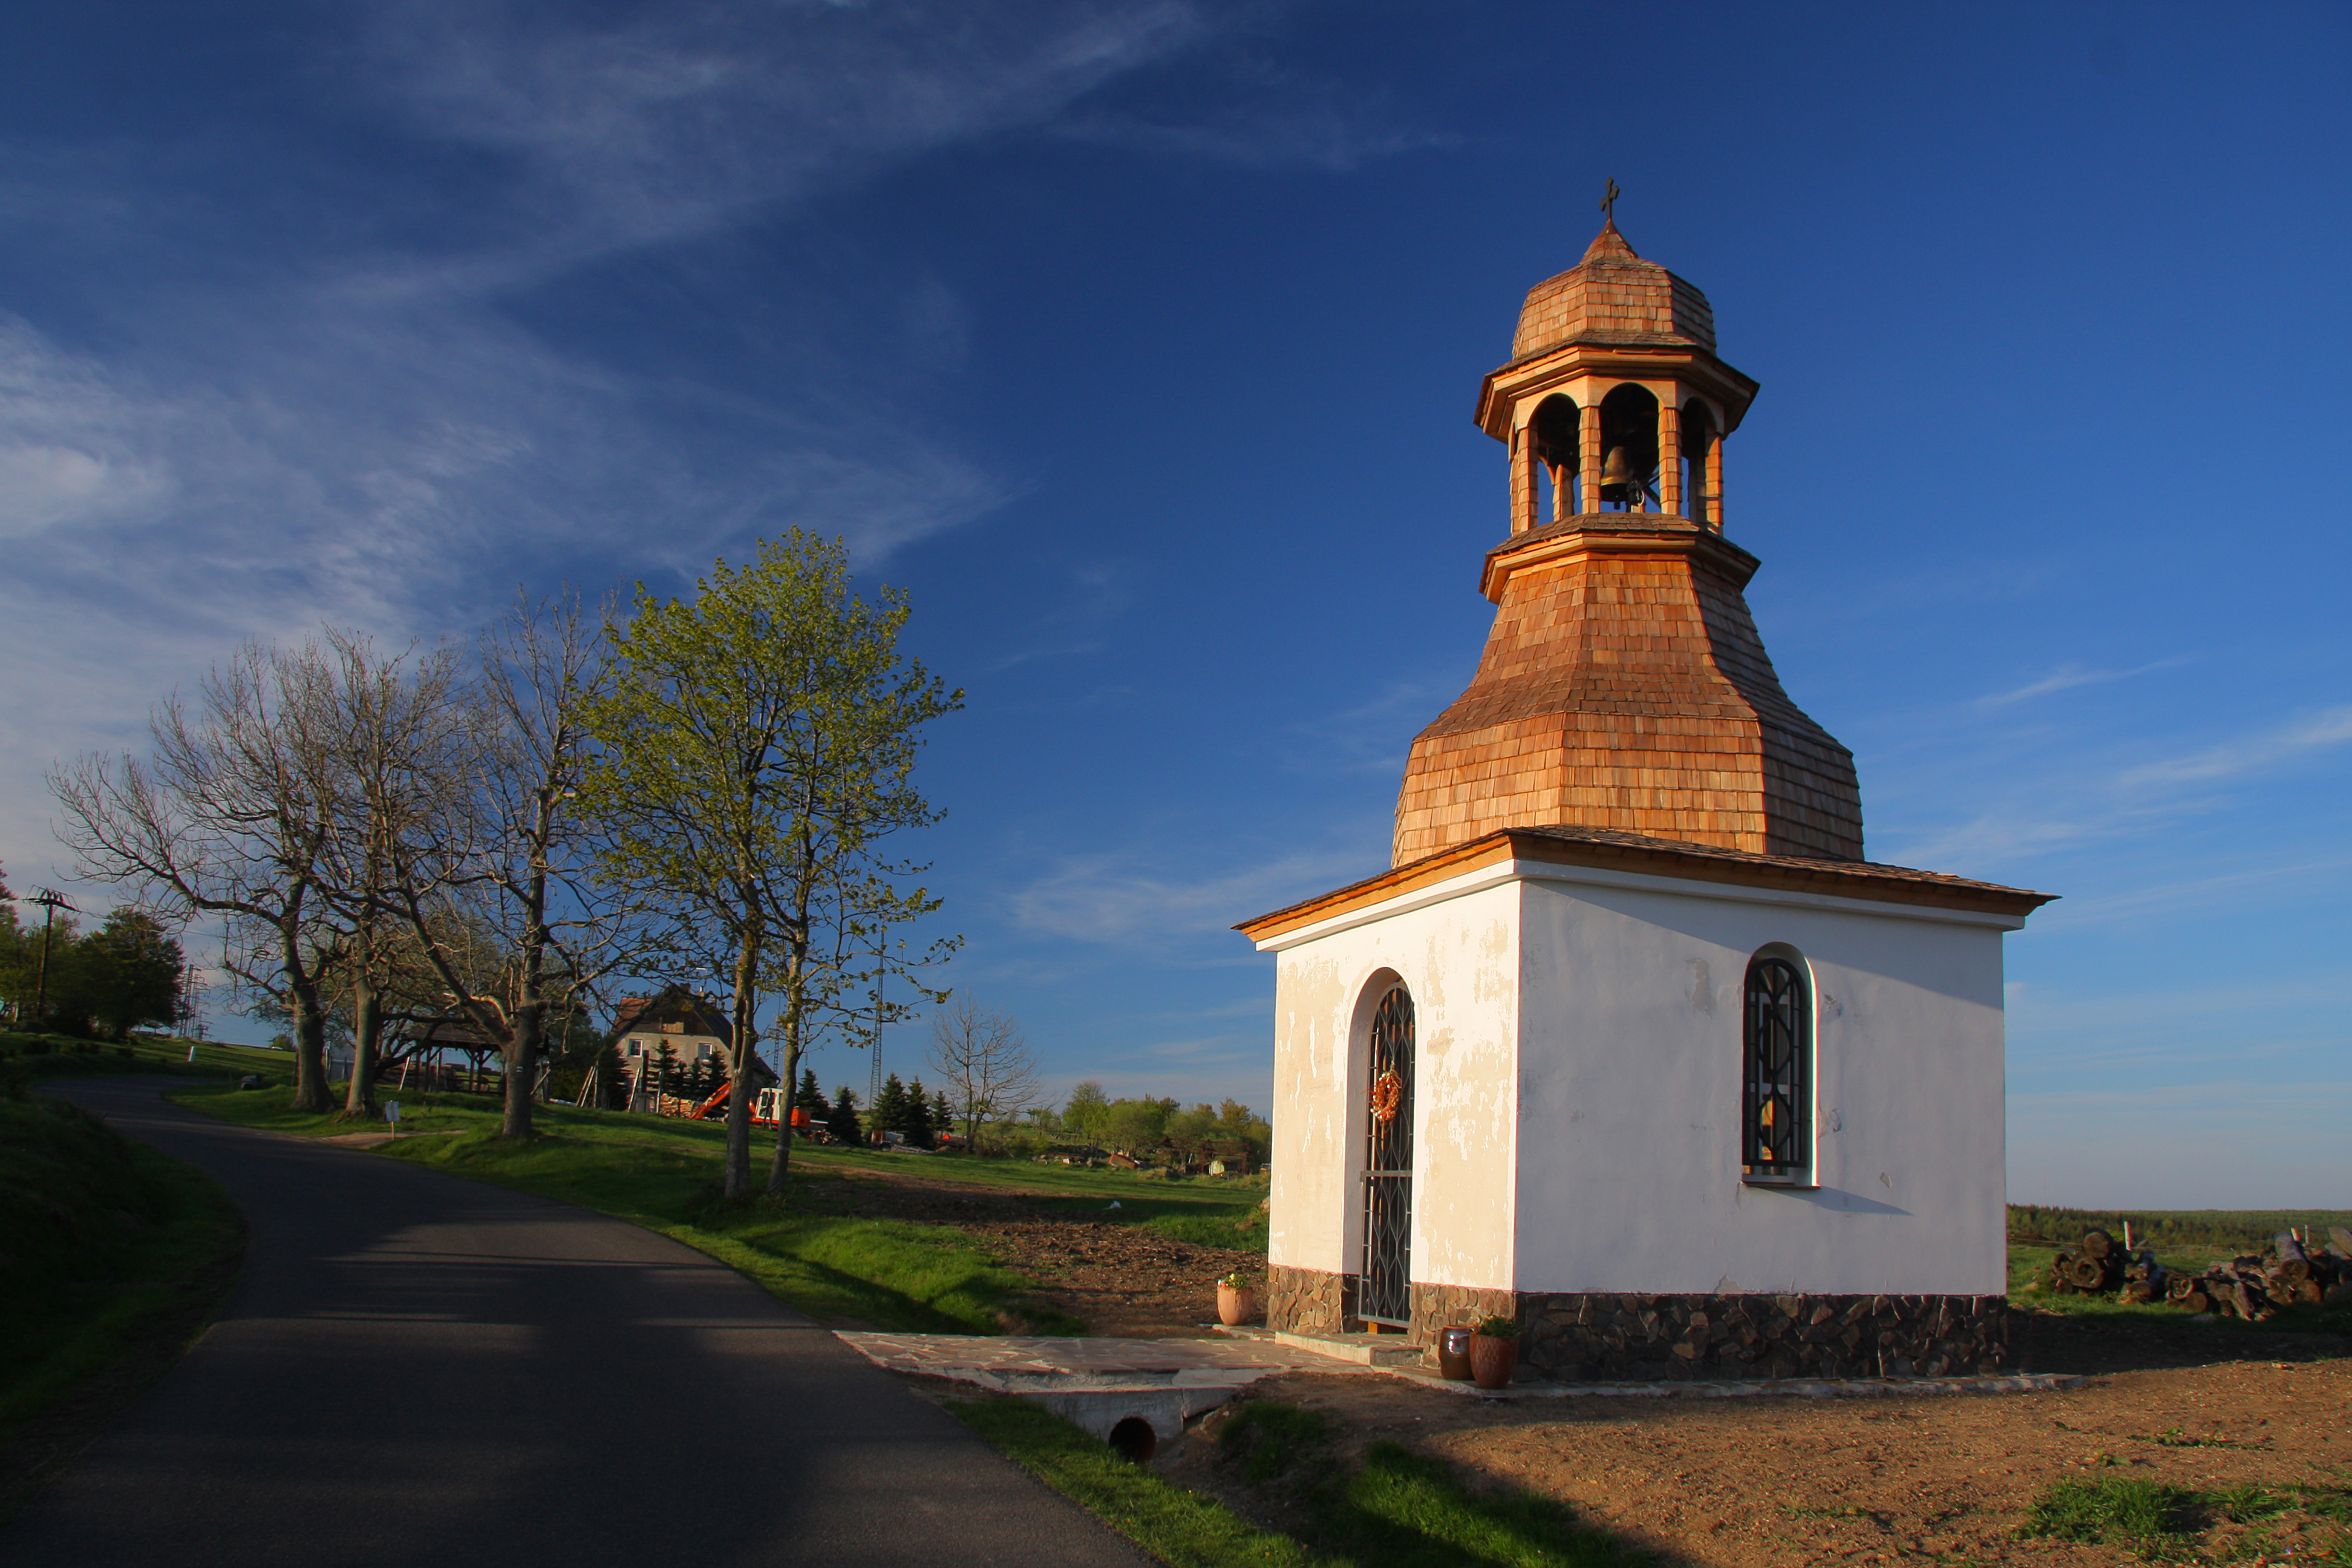 Replica of a bell tower